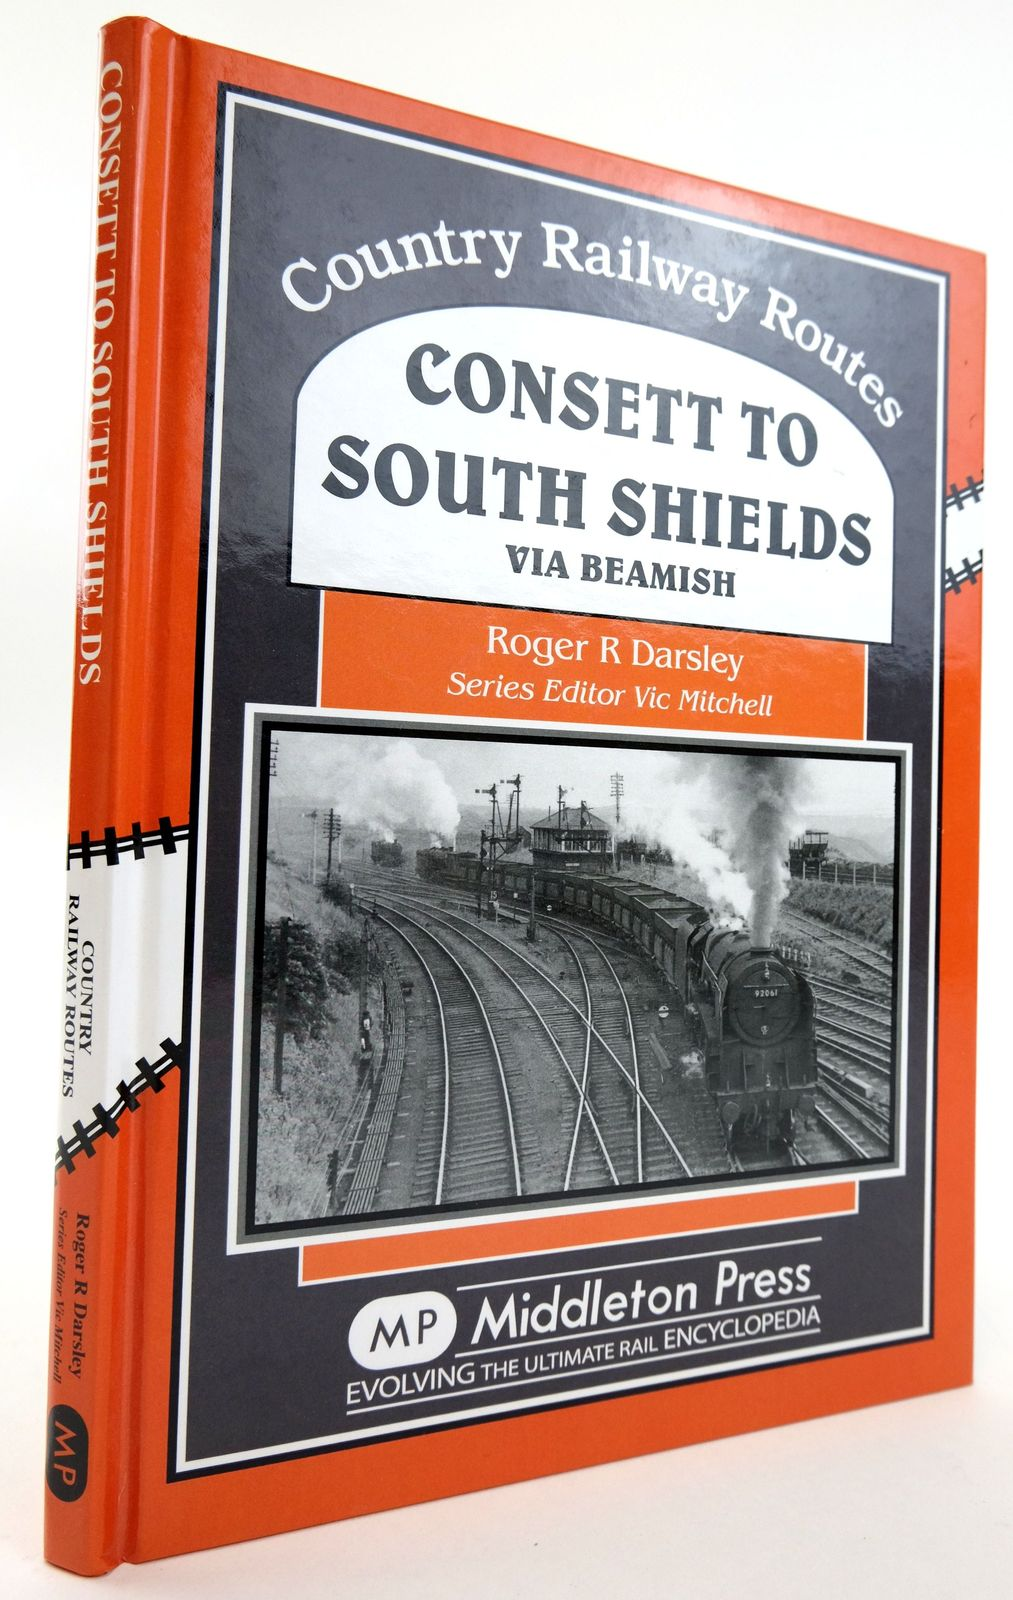 Photo of CONSETT TO SOUTH SHIELDS VIA BEAMISH (COUNTRY RAILWAY ROUTES) written by Mitchell, Vic Darsley, Roger published by Middleton Press (STOCK CODE: 1820063)  for sale by Stella & Rose's Books